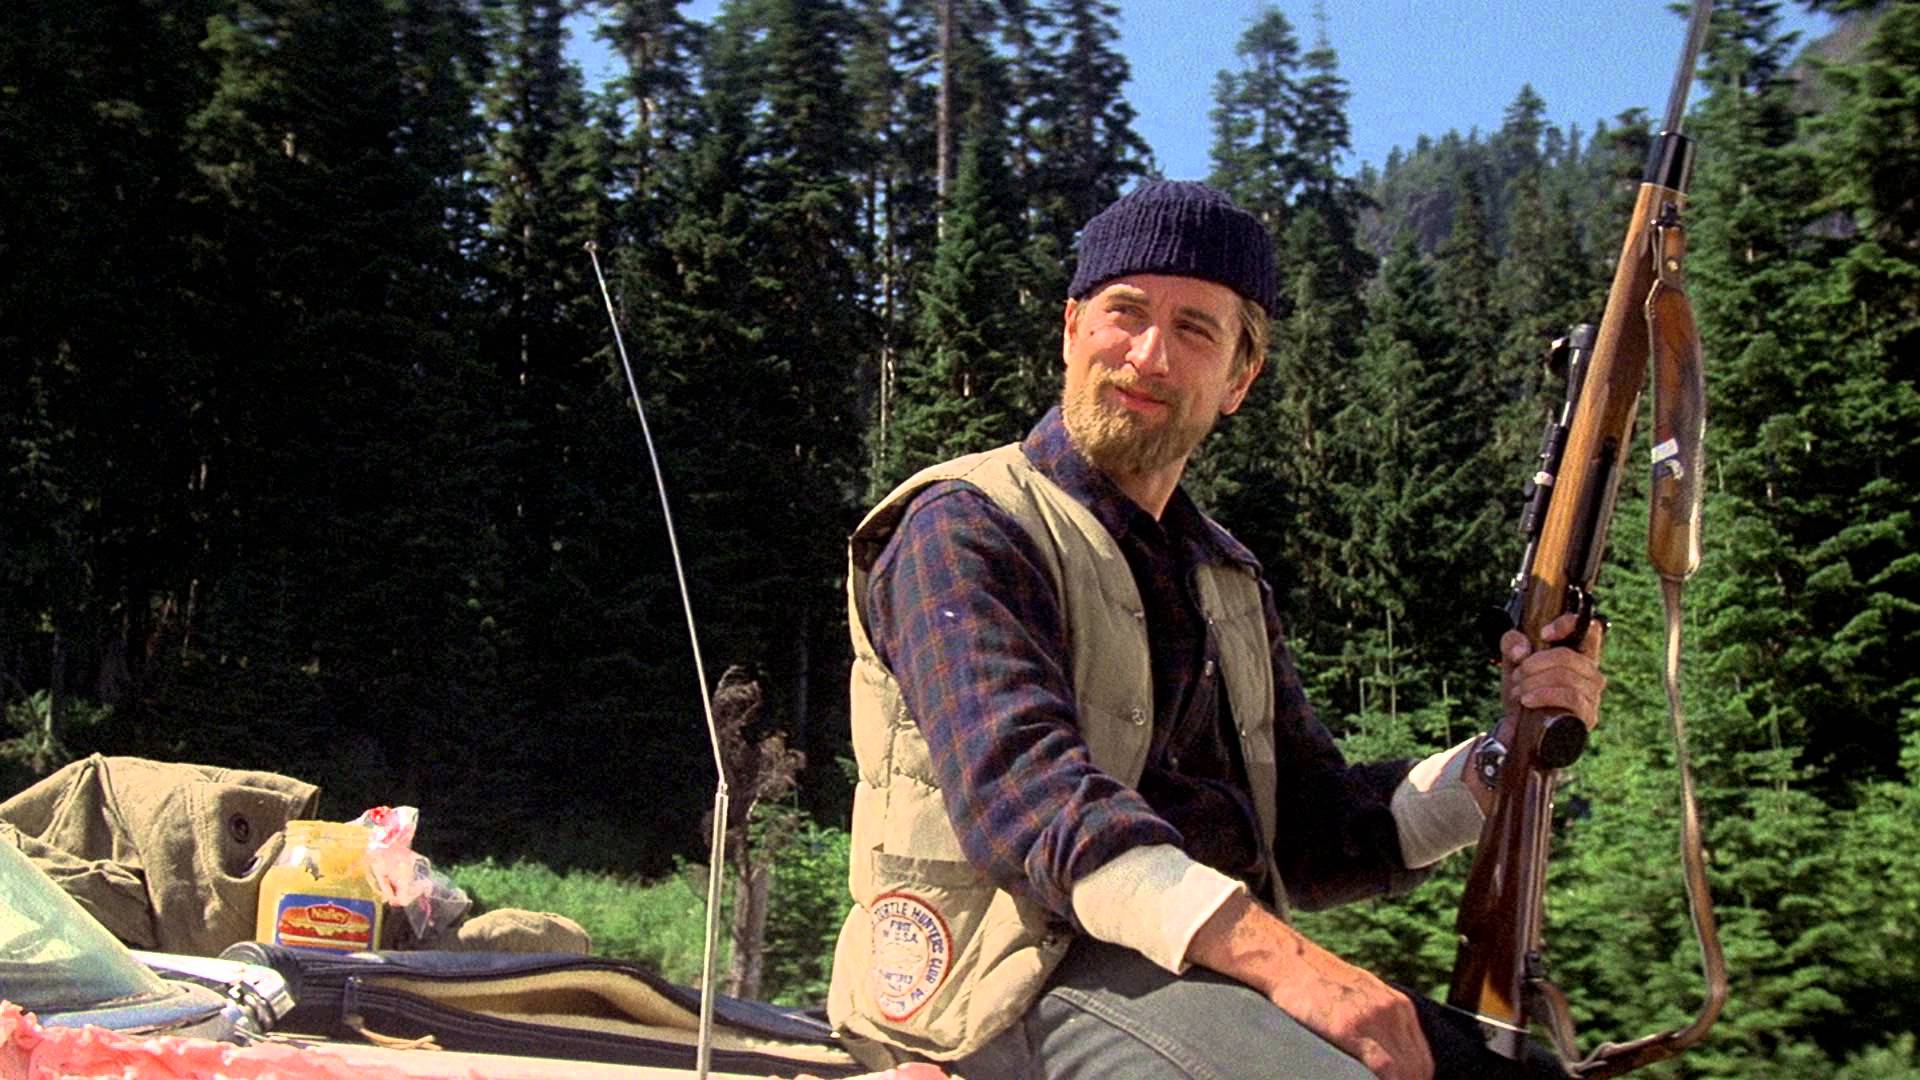 Avcı / The Deer Hunter (1978)